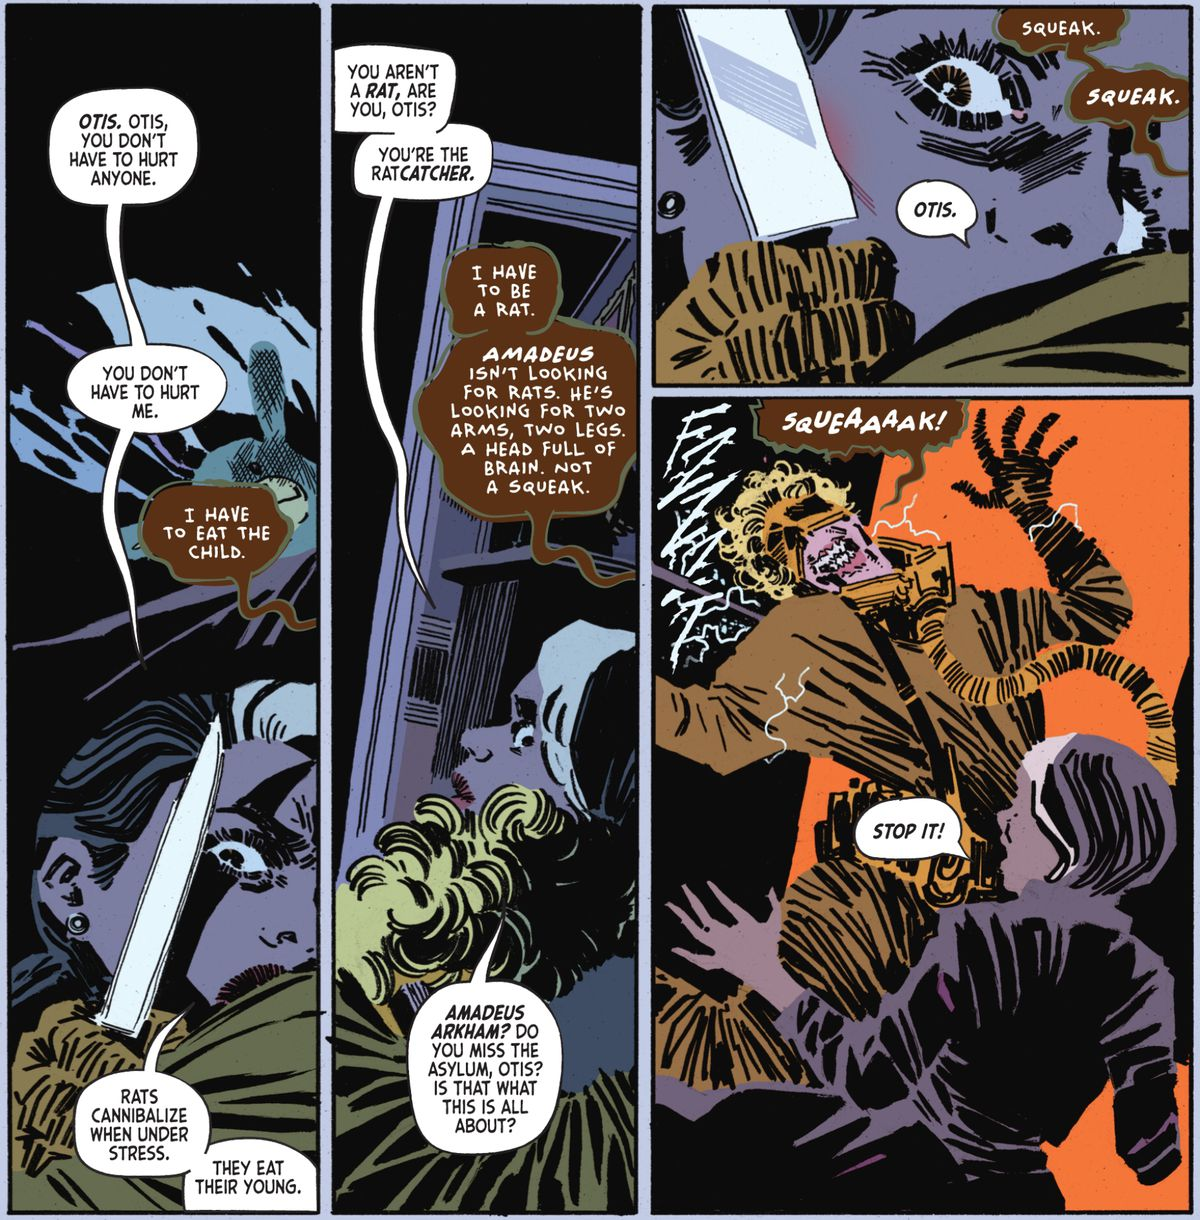 Ratcatcher  holds a knife to the throat of Dr. Jocasta Joy, explaining that he has to eat the child in order to become a rat so that Amadeus Arkham can't find him. She calmly tries to talk him down, until he is suddenly tased in Arkham City: The Order of the World #1 (2021).